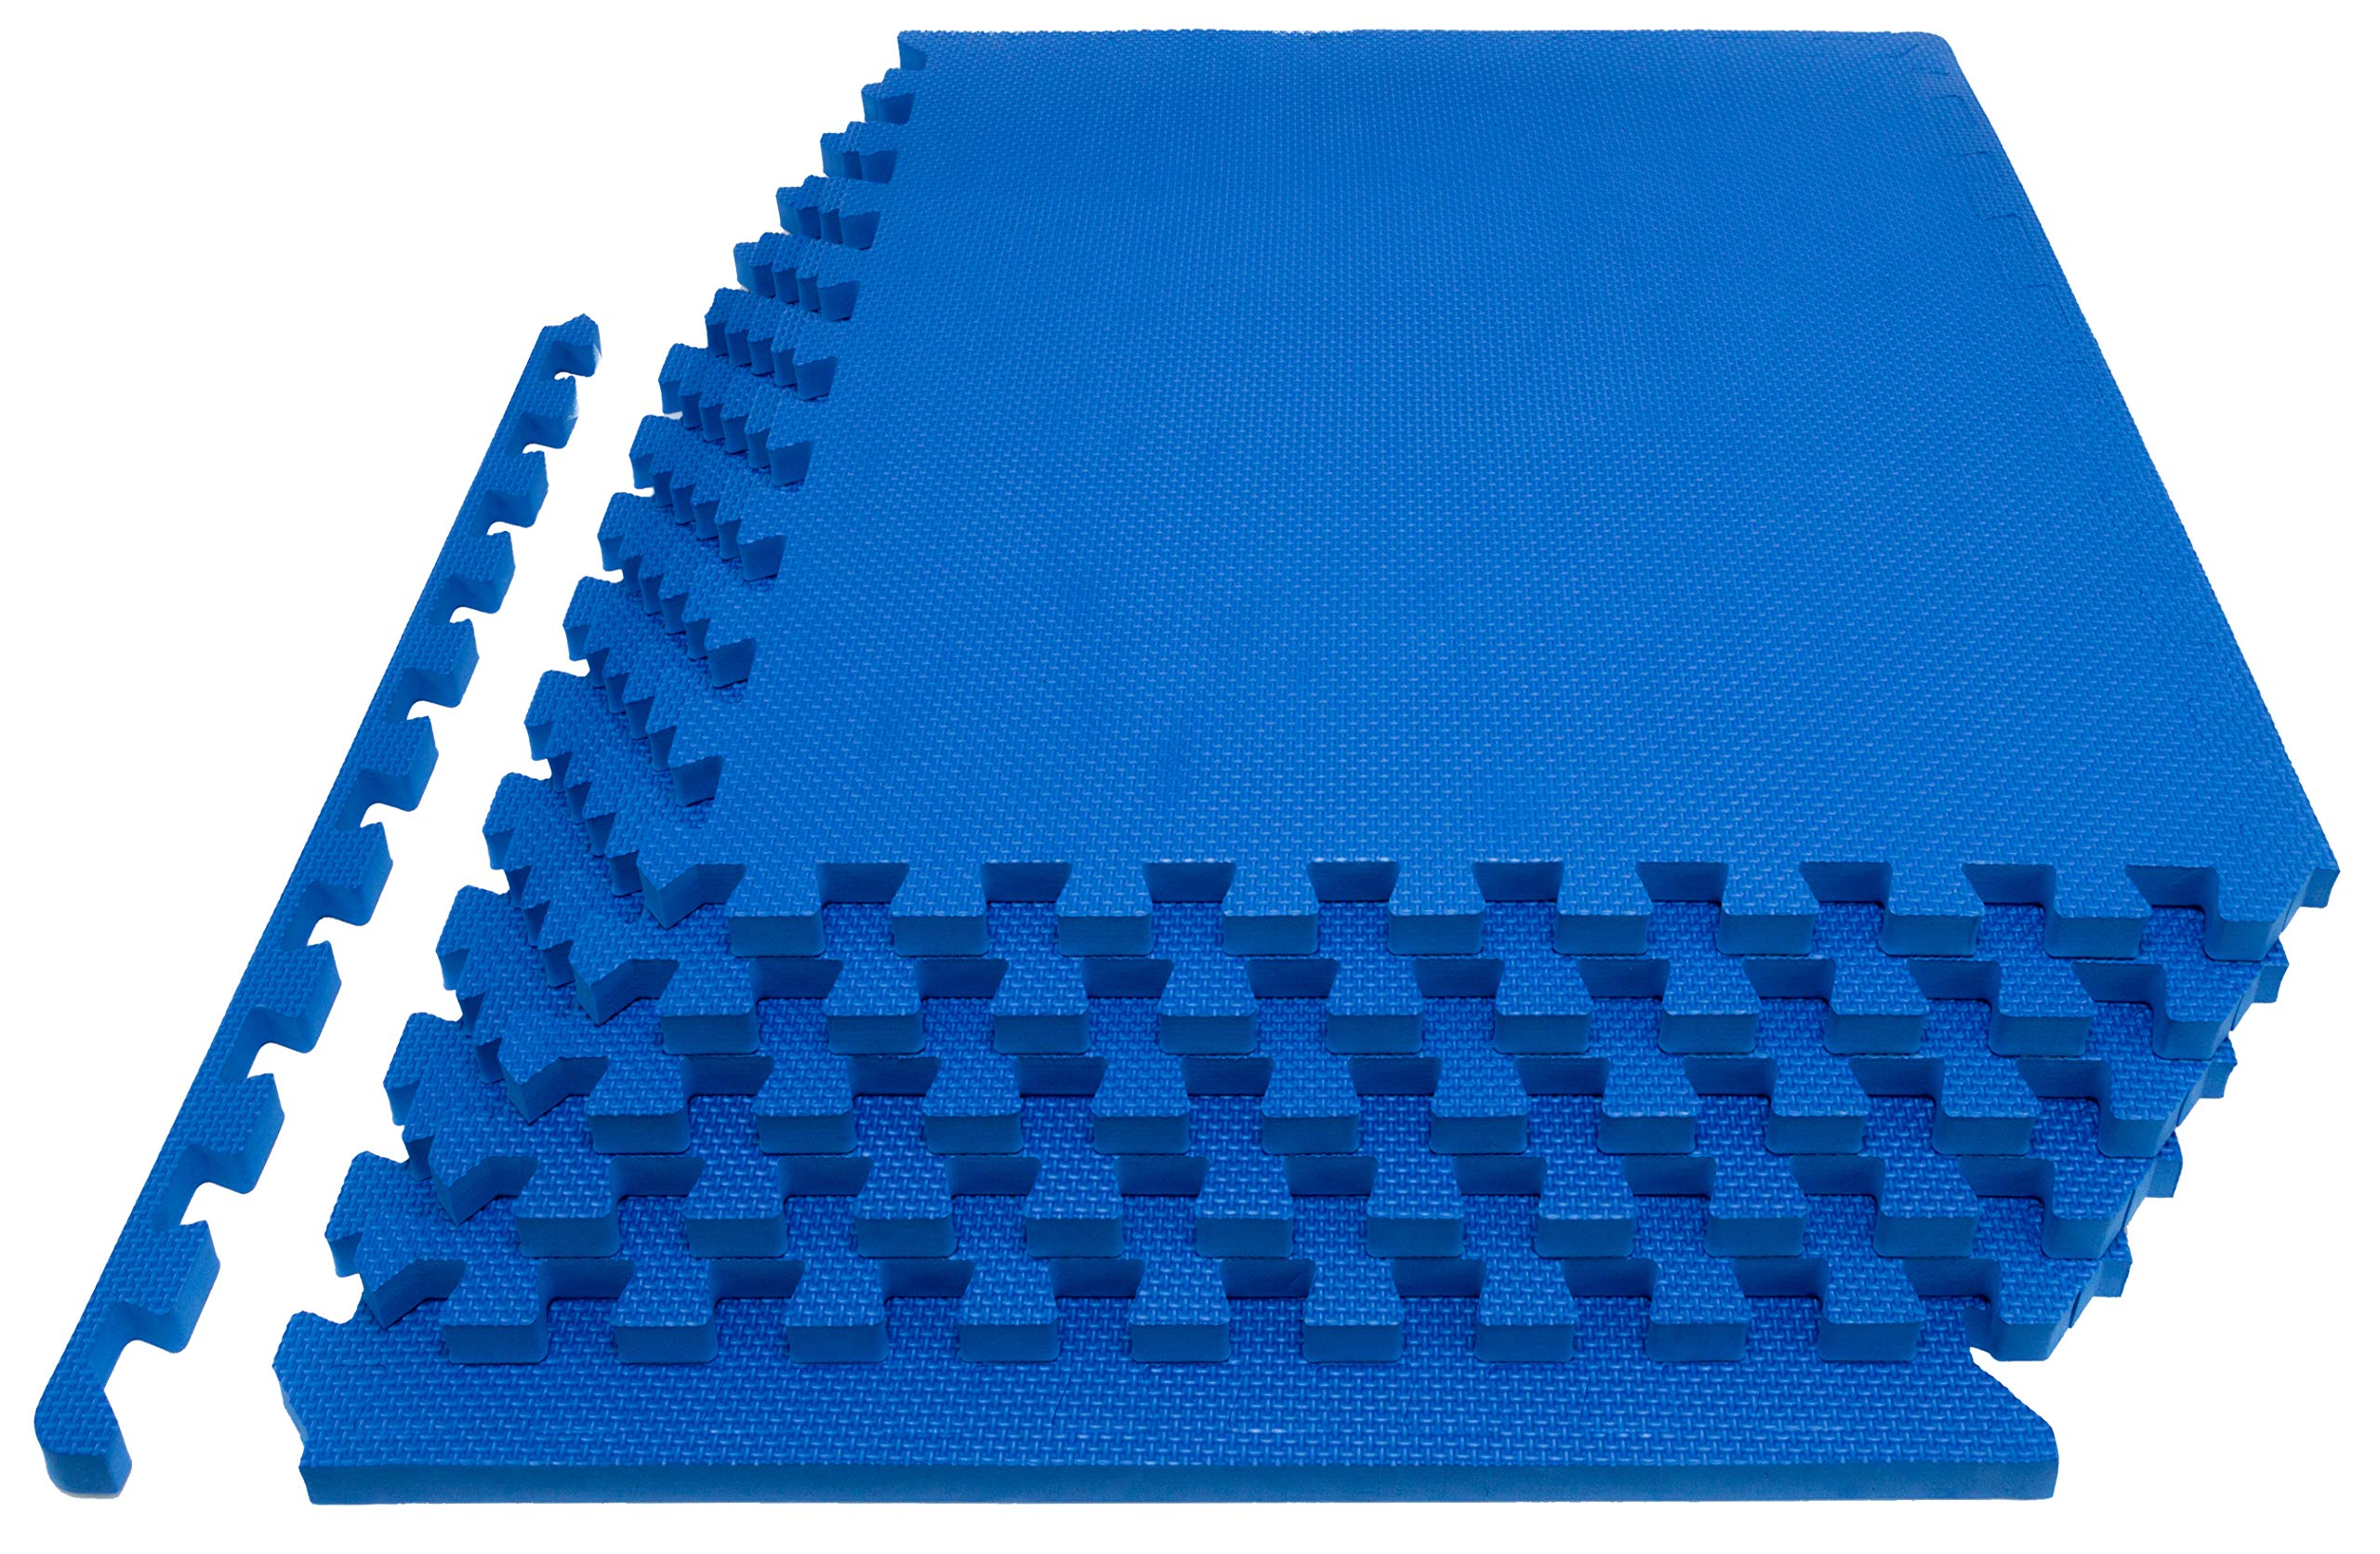 Prosource Fit Extra Thick Puzzle Exercise Mat 1'', EVA Foam Interlocking Tiles for Protective, Cushioned Workout Flooring for Home and Gym Equipment, Blue by ProsourceFit